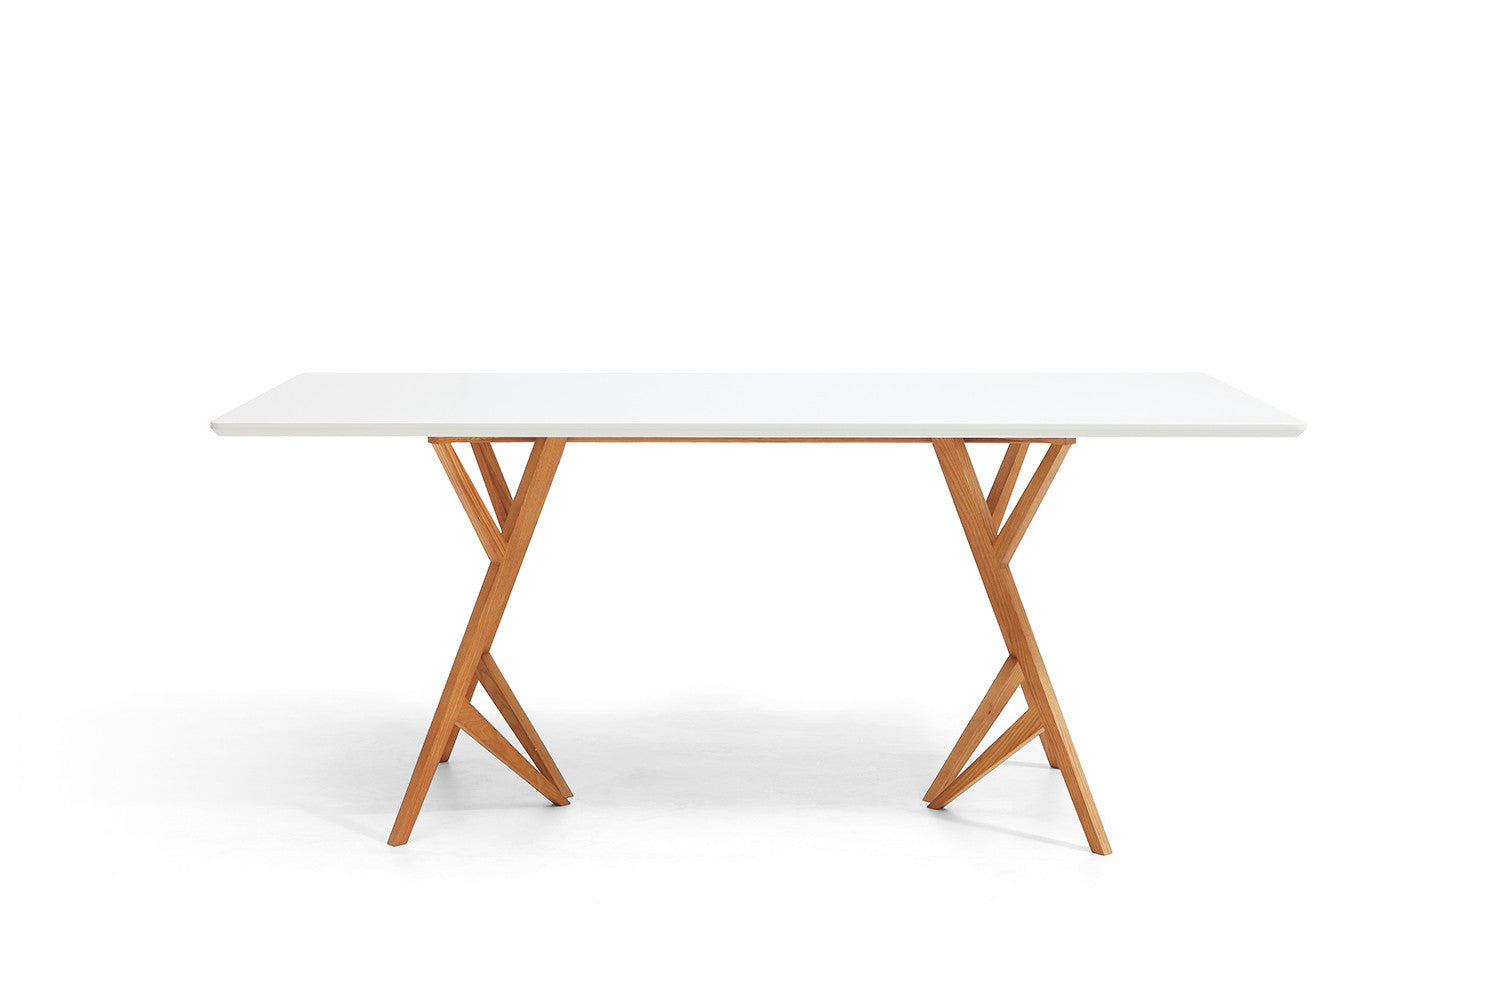 Table de salle manger design scandinave vispa dewarens for Table de salle a manger design bois